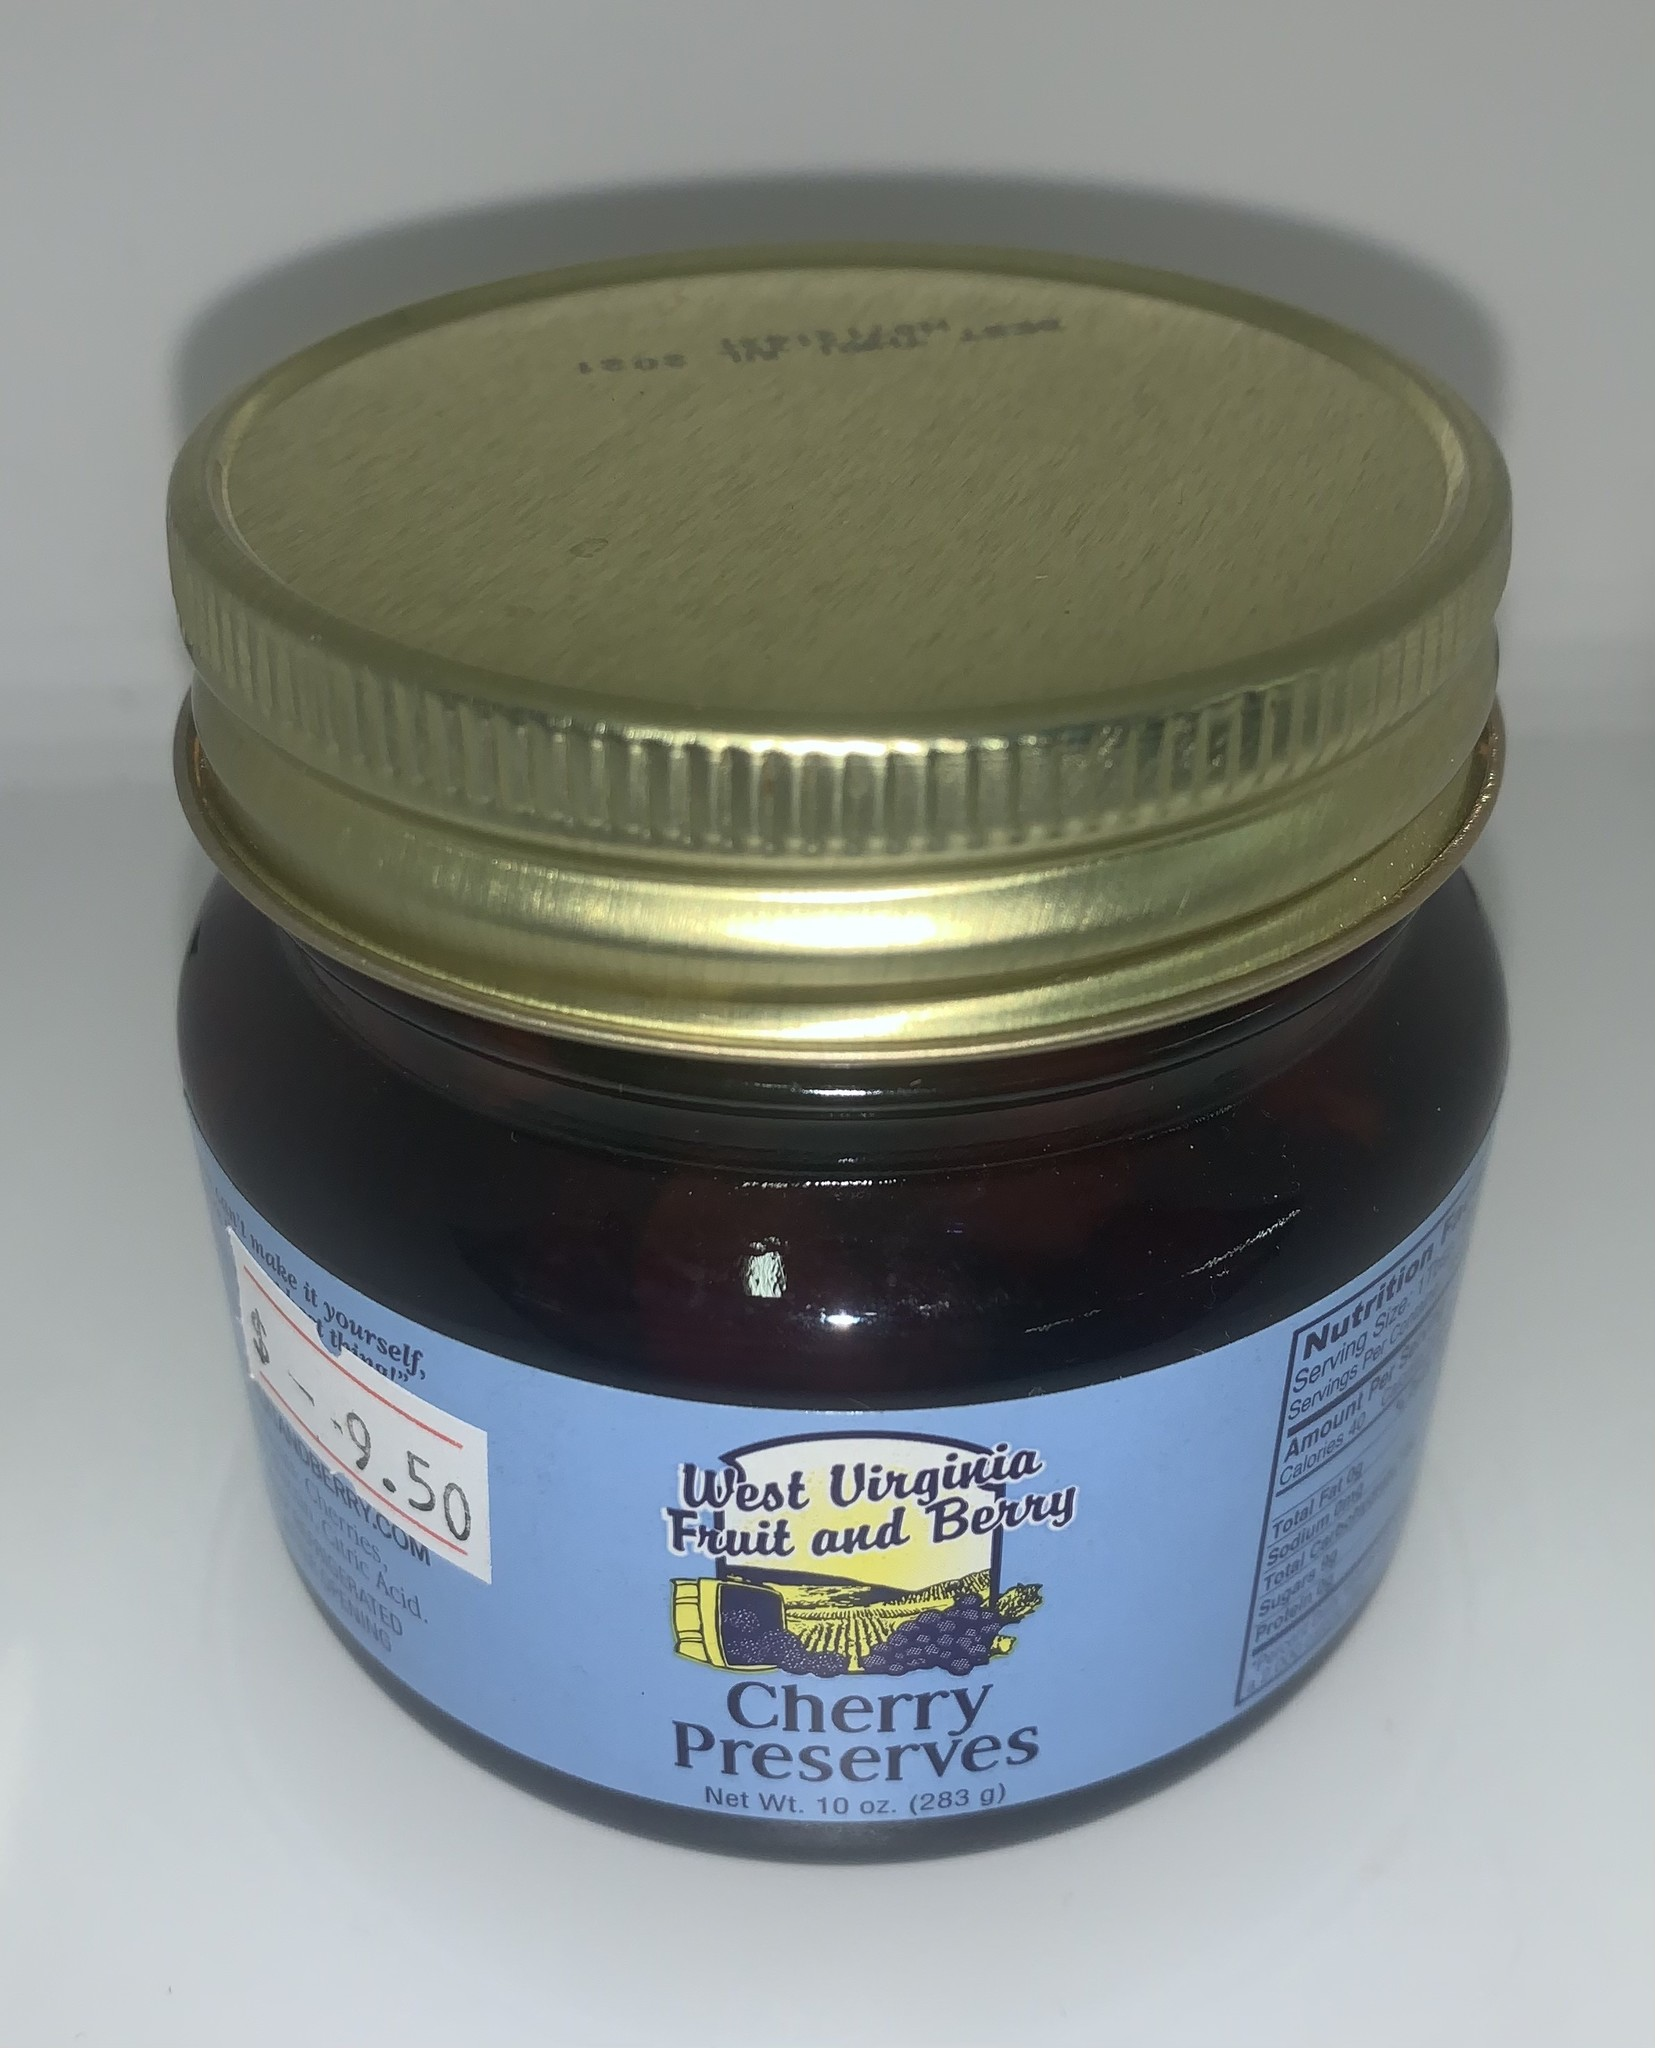 West Virginia Fruit and Berry WVF&B 10 oz. Cherry Preserves